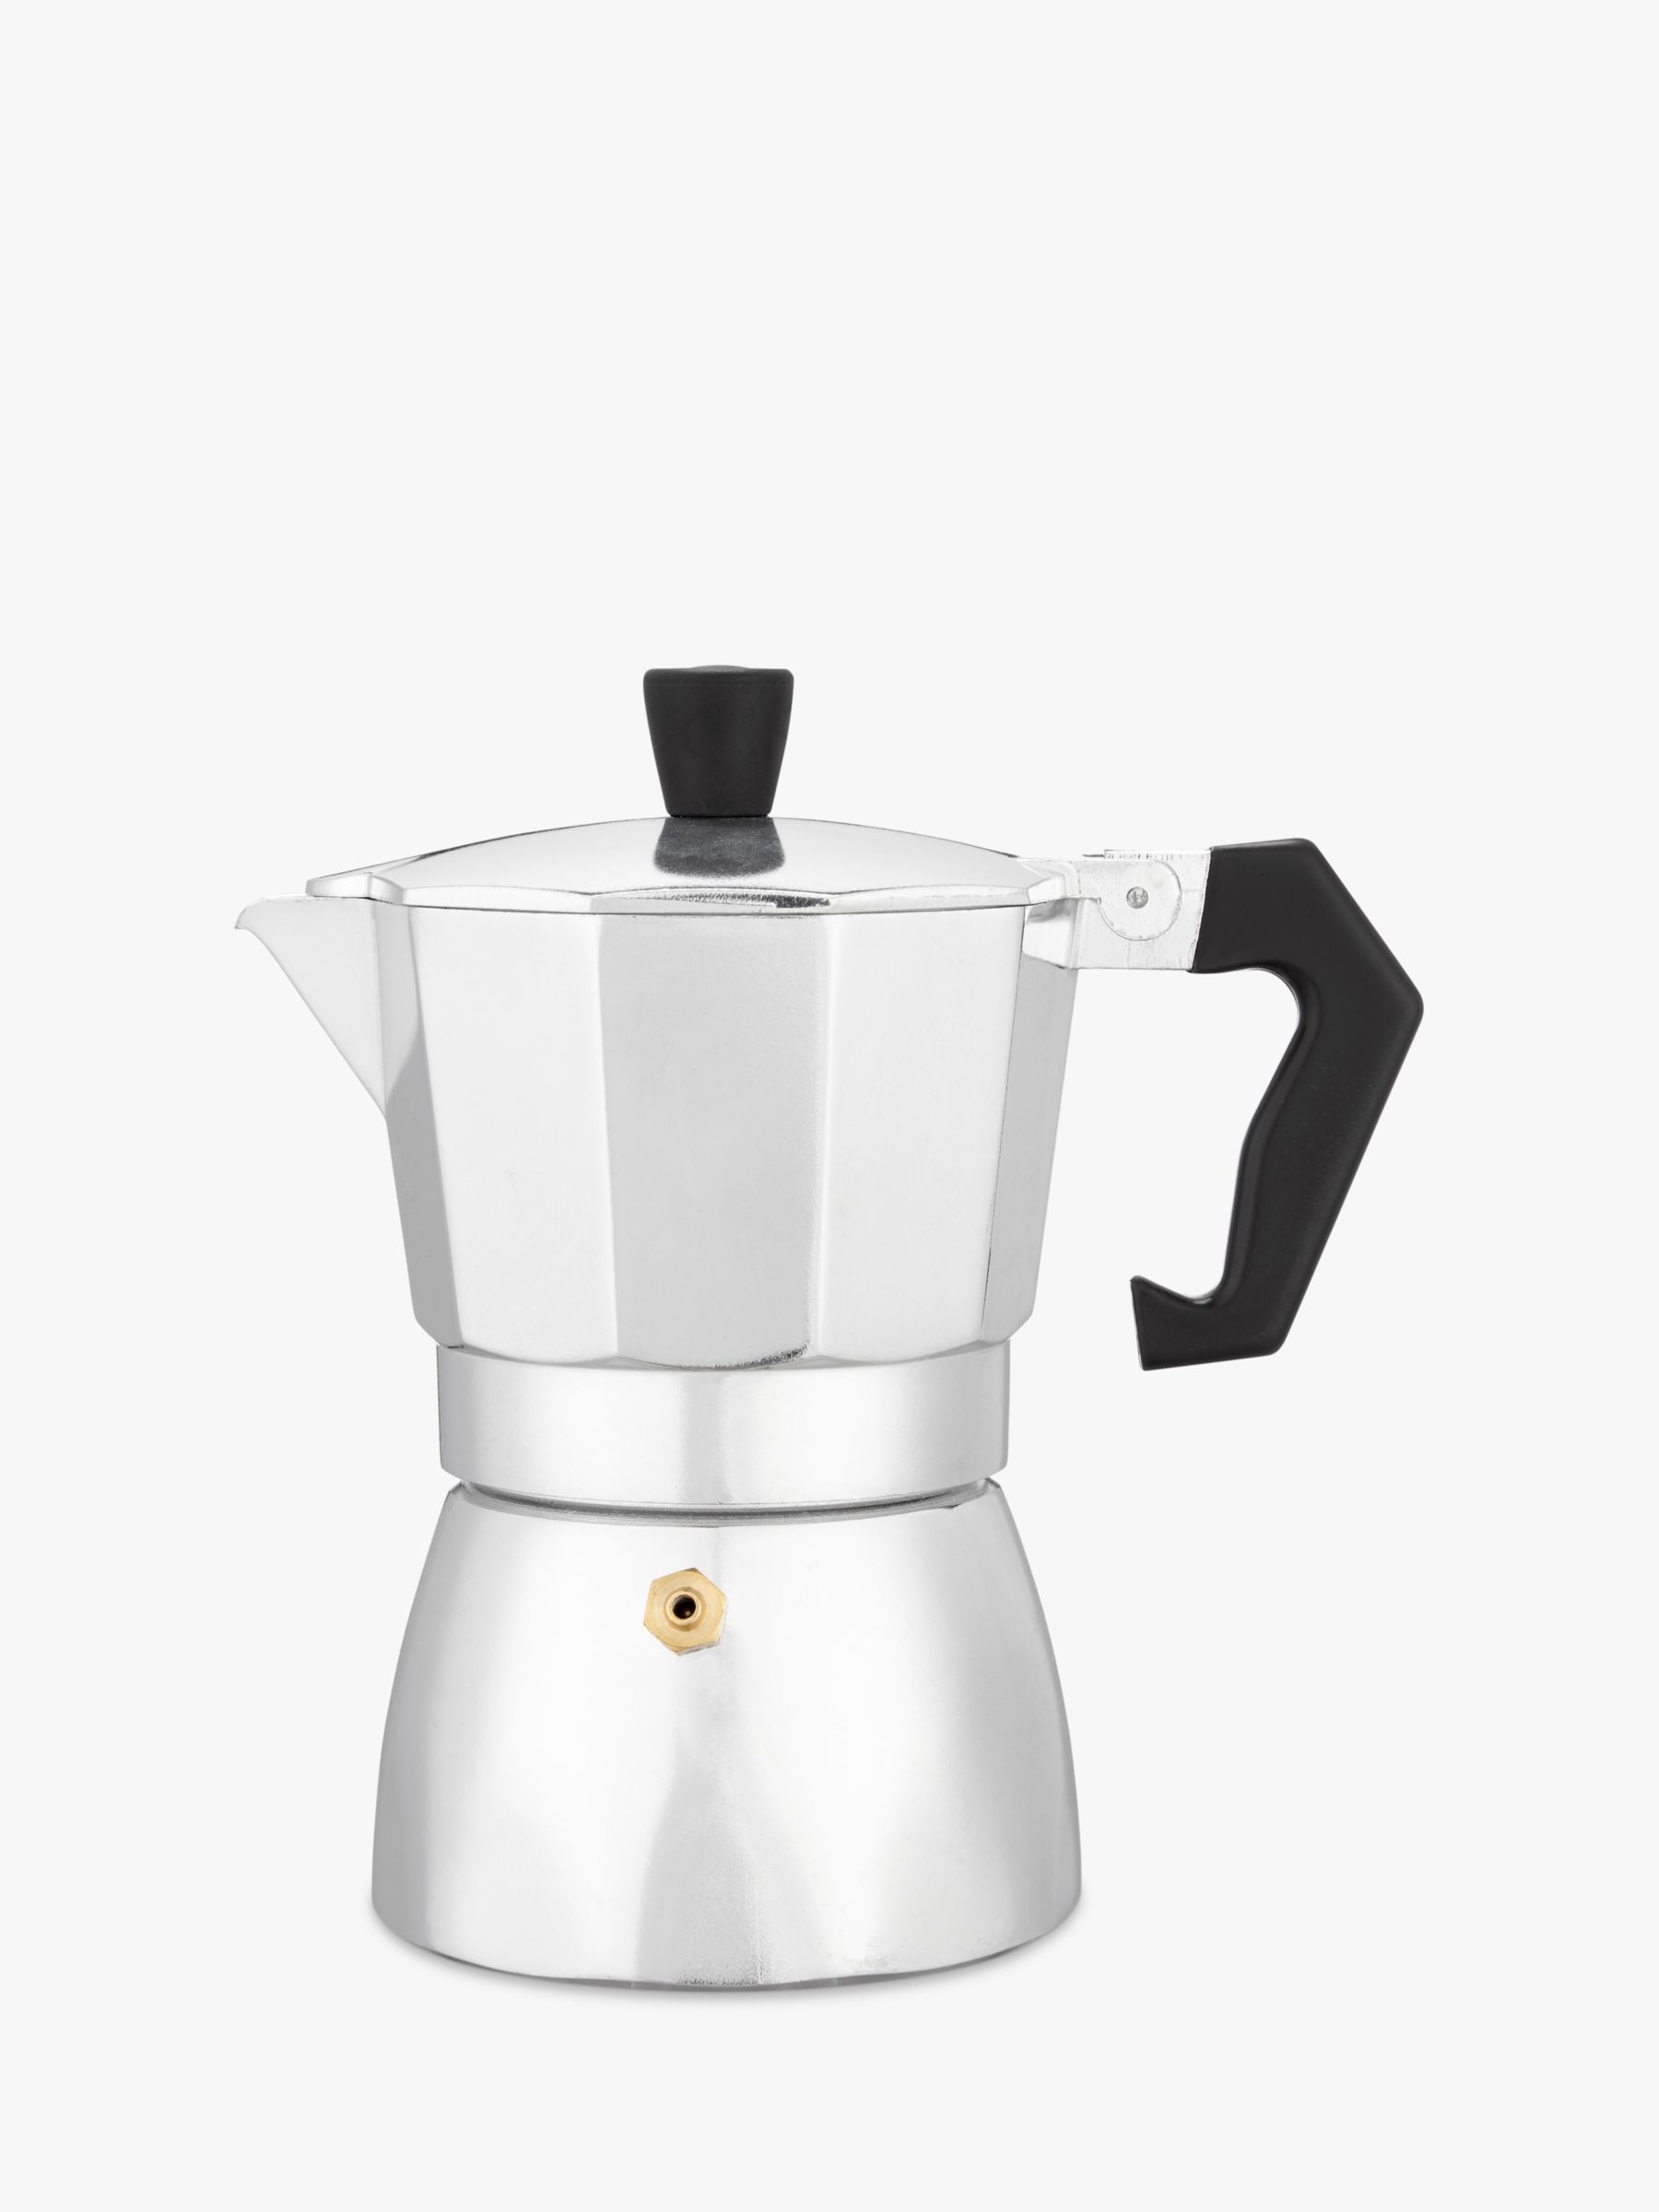 Buy cheap Espresso maker 3 - compare Coffee Makers prices for best UK deals